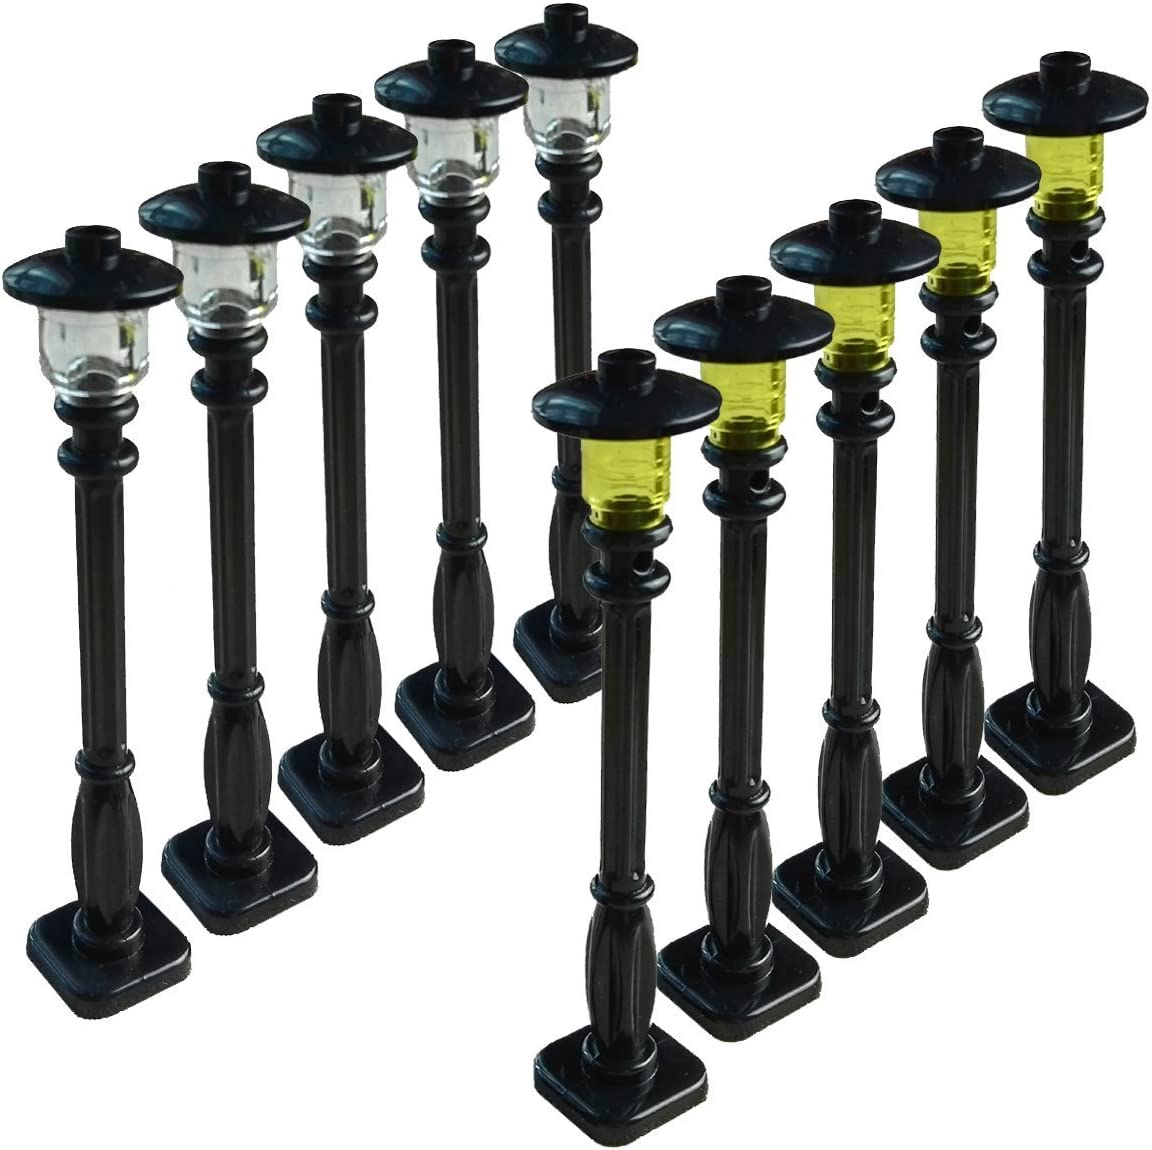 Black Post with Clear Bulb /& Black Cover Compatile with Major Brands Taken All Building Block Street Light Set of 10